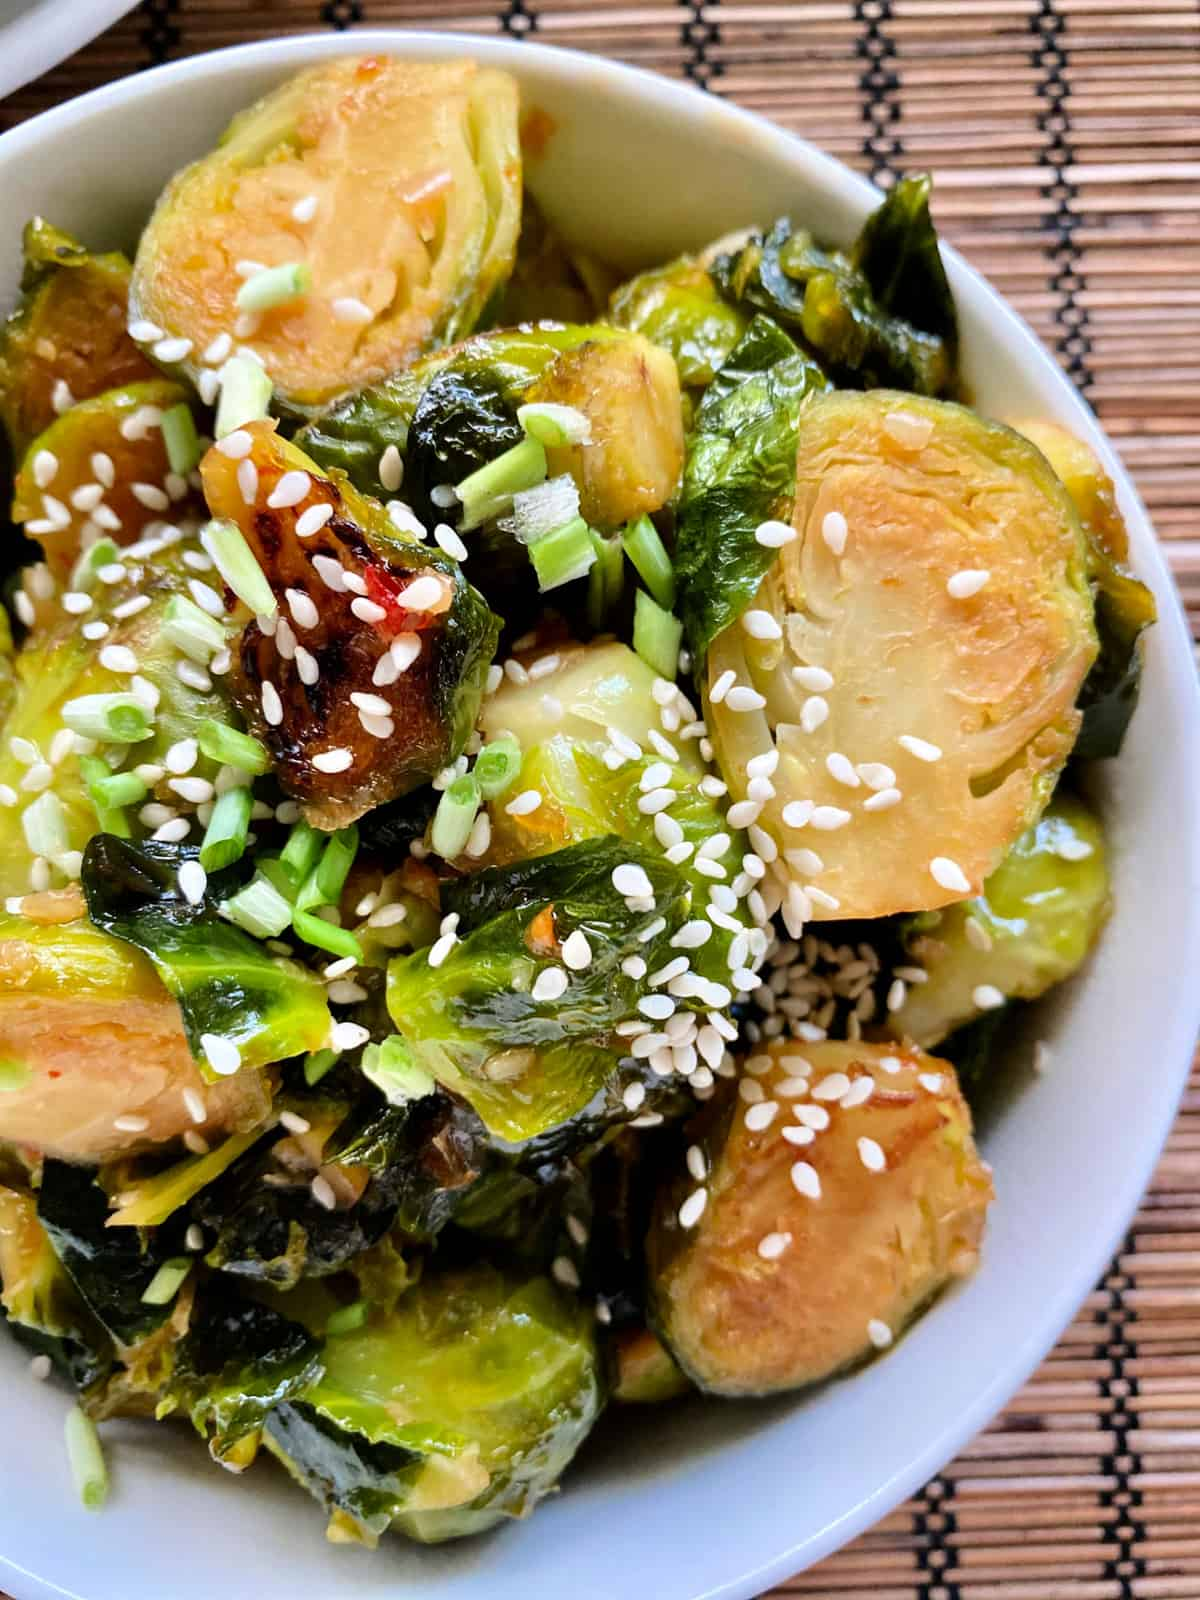 Top view of a white bowl filled with sliced browned brussels sprouts with sesame seeds and green onions.